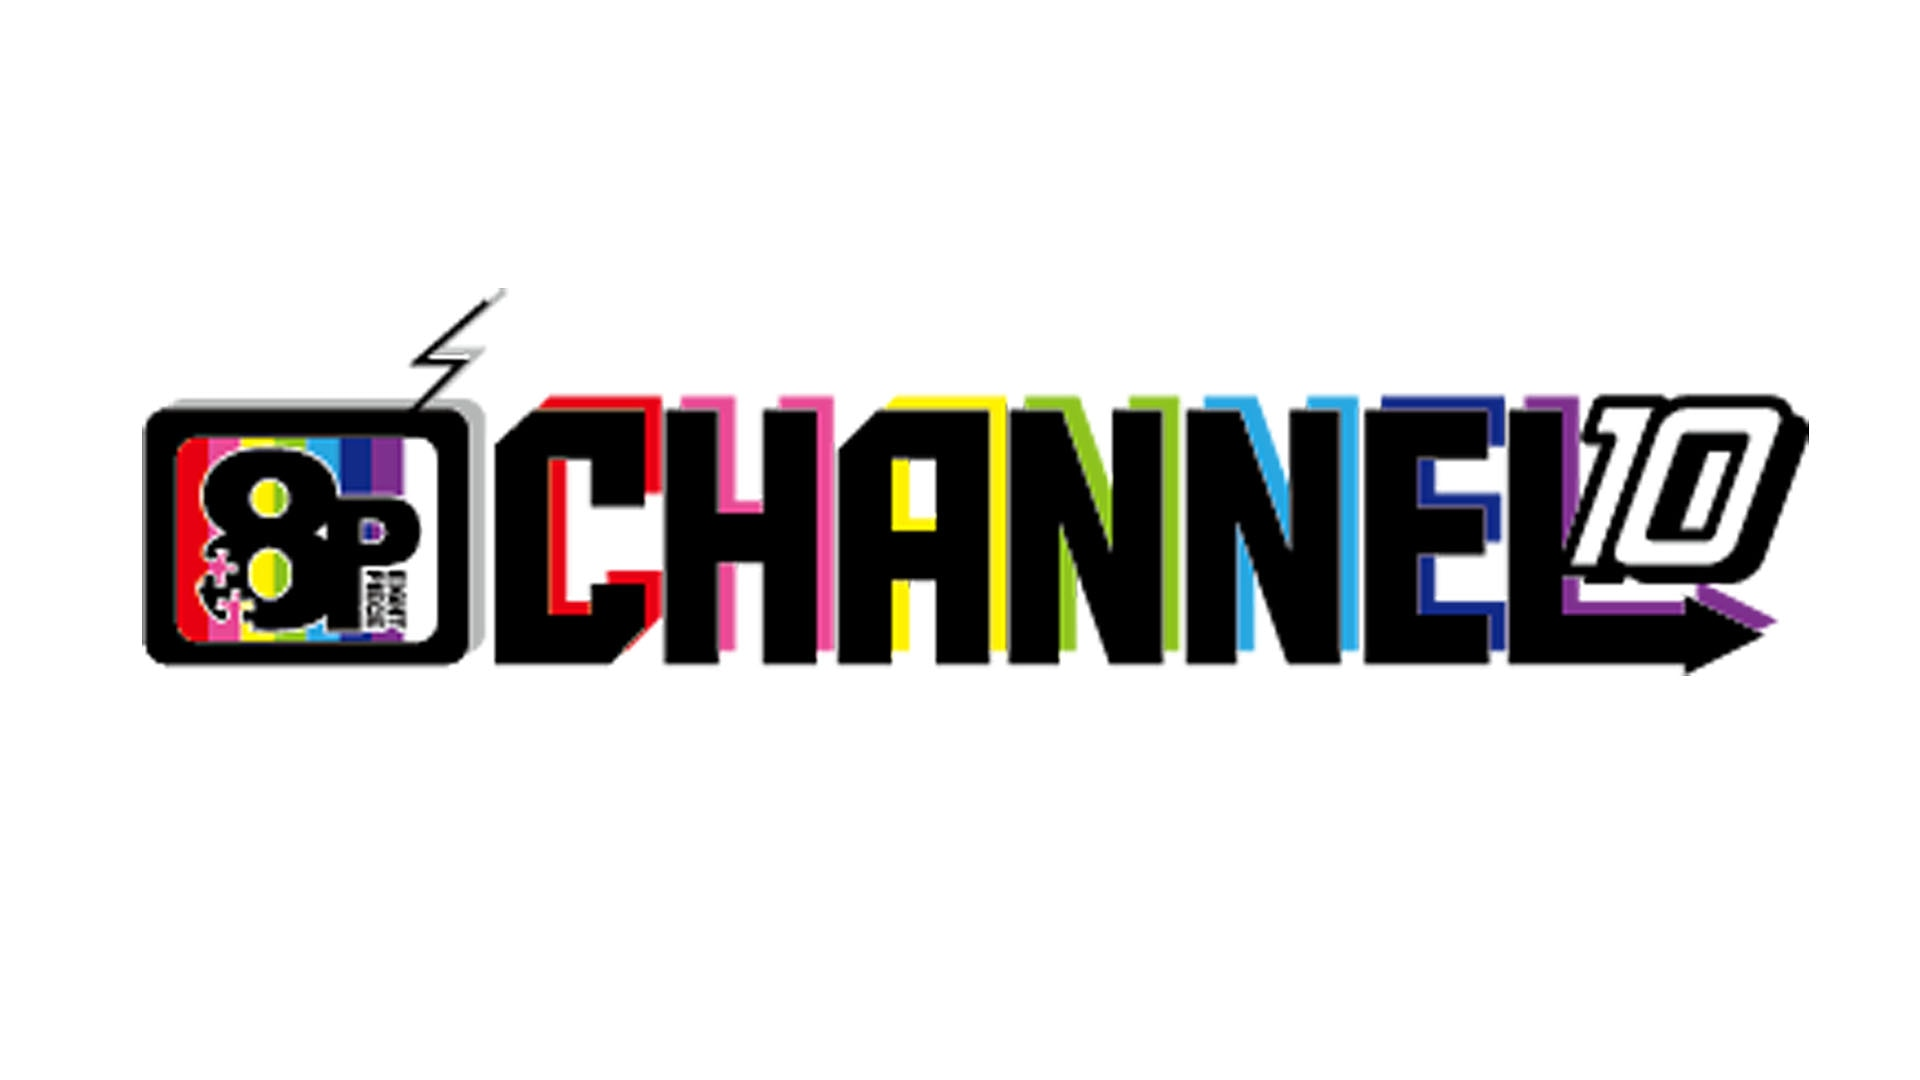 8P channel 10